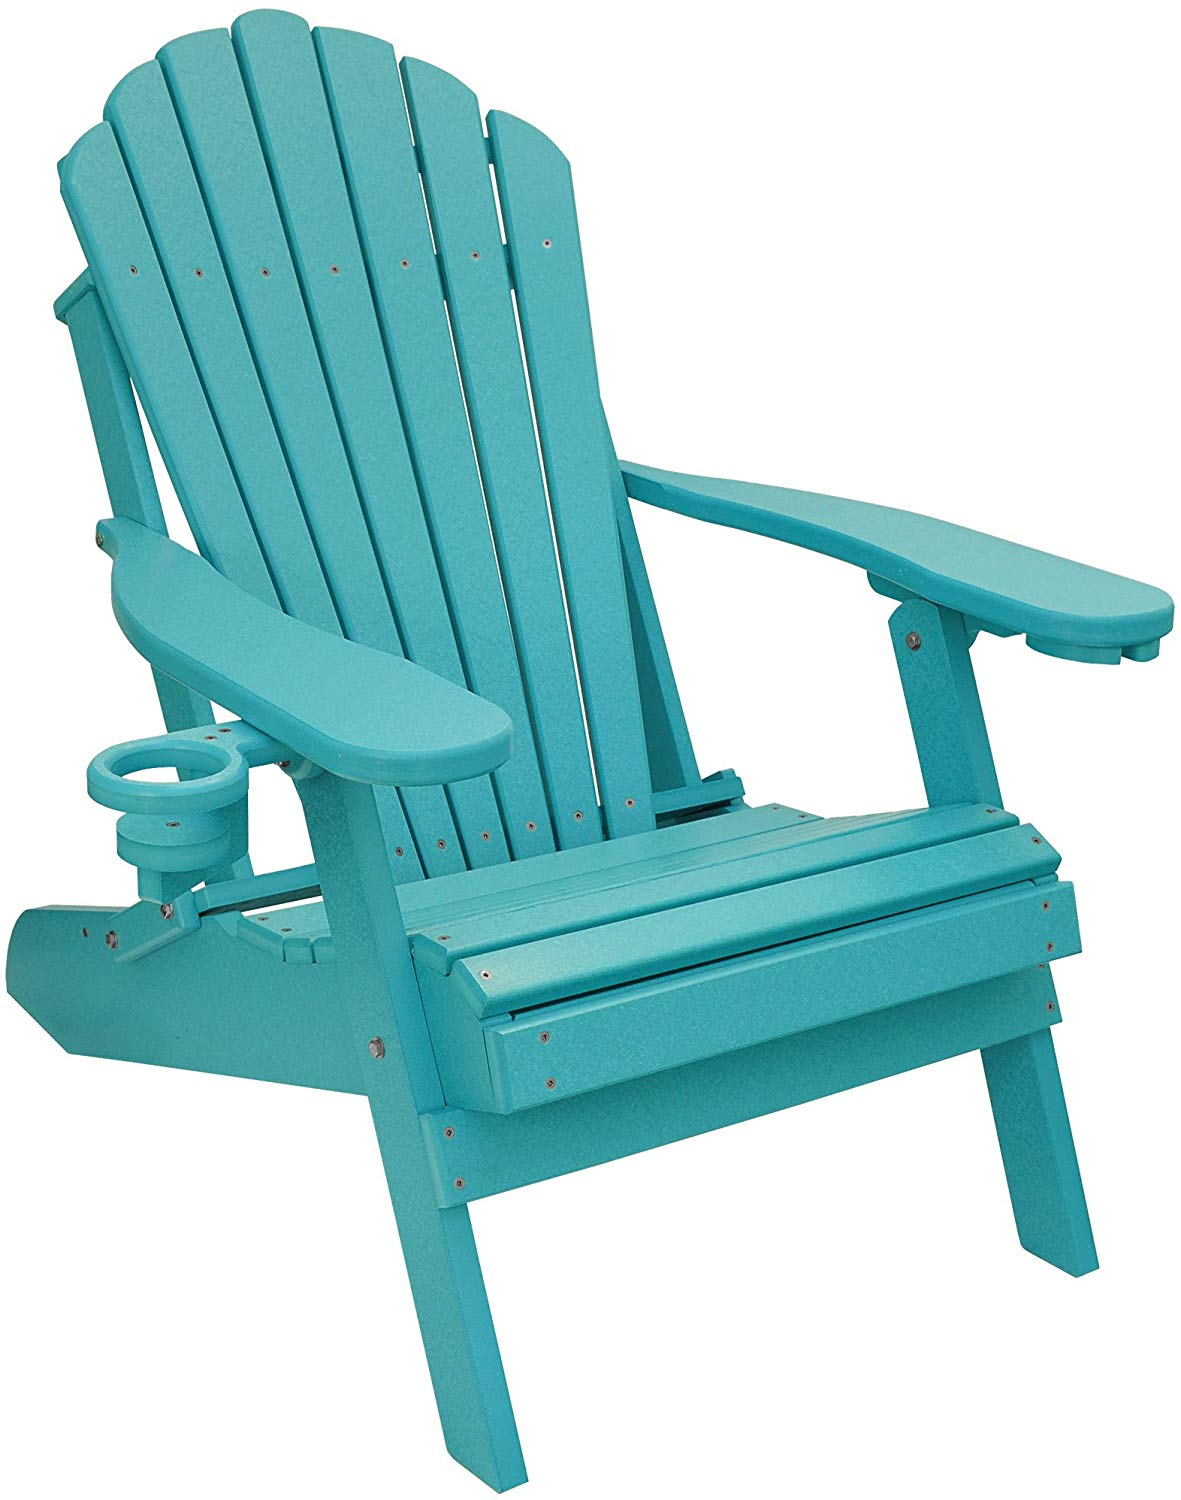 ECCB Outdoor Outer Banks Deluxe Oversized Poly Lumber Folding Adirondack Chair (Aruba Blue)